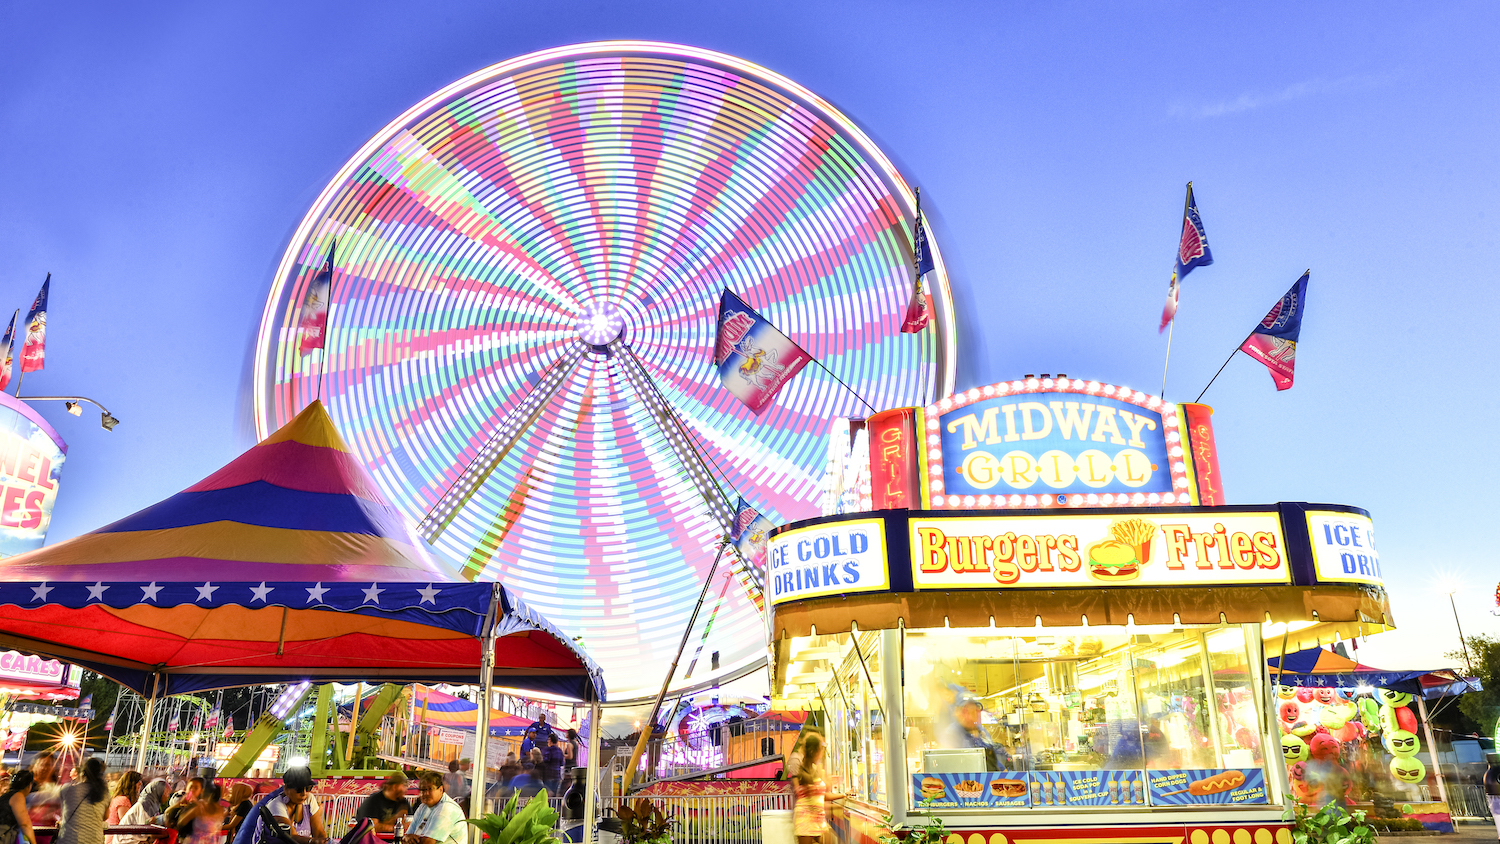 The New Food Coming to the Minnesota State Fair Will Blow Your Mind